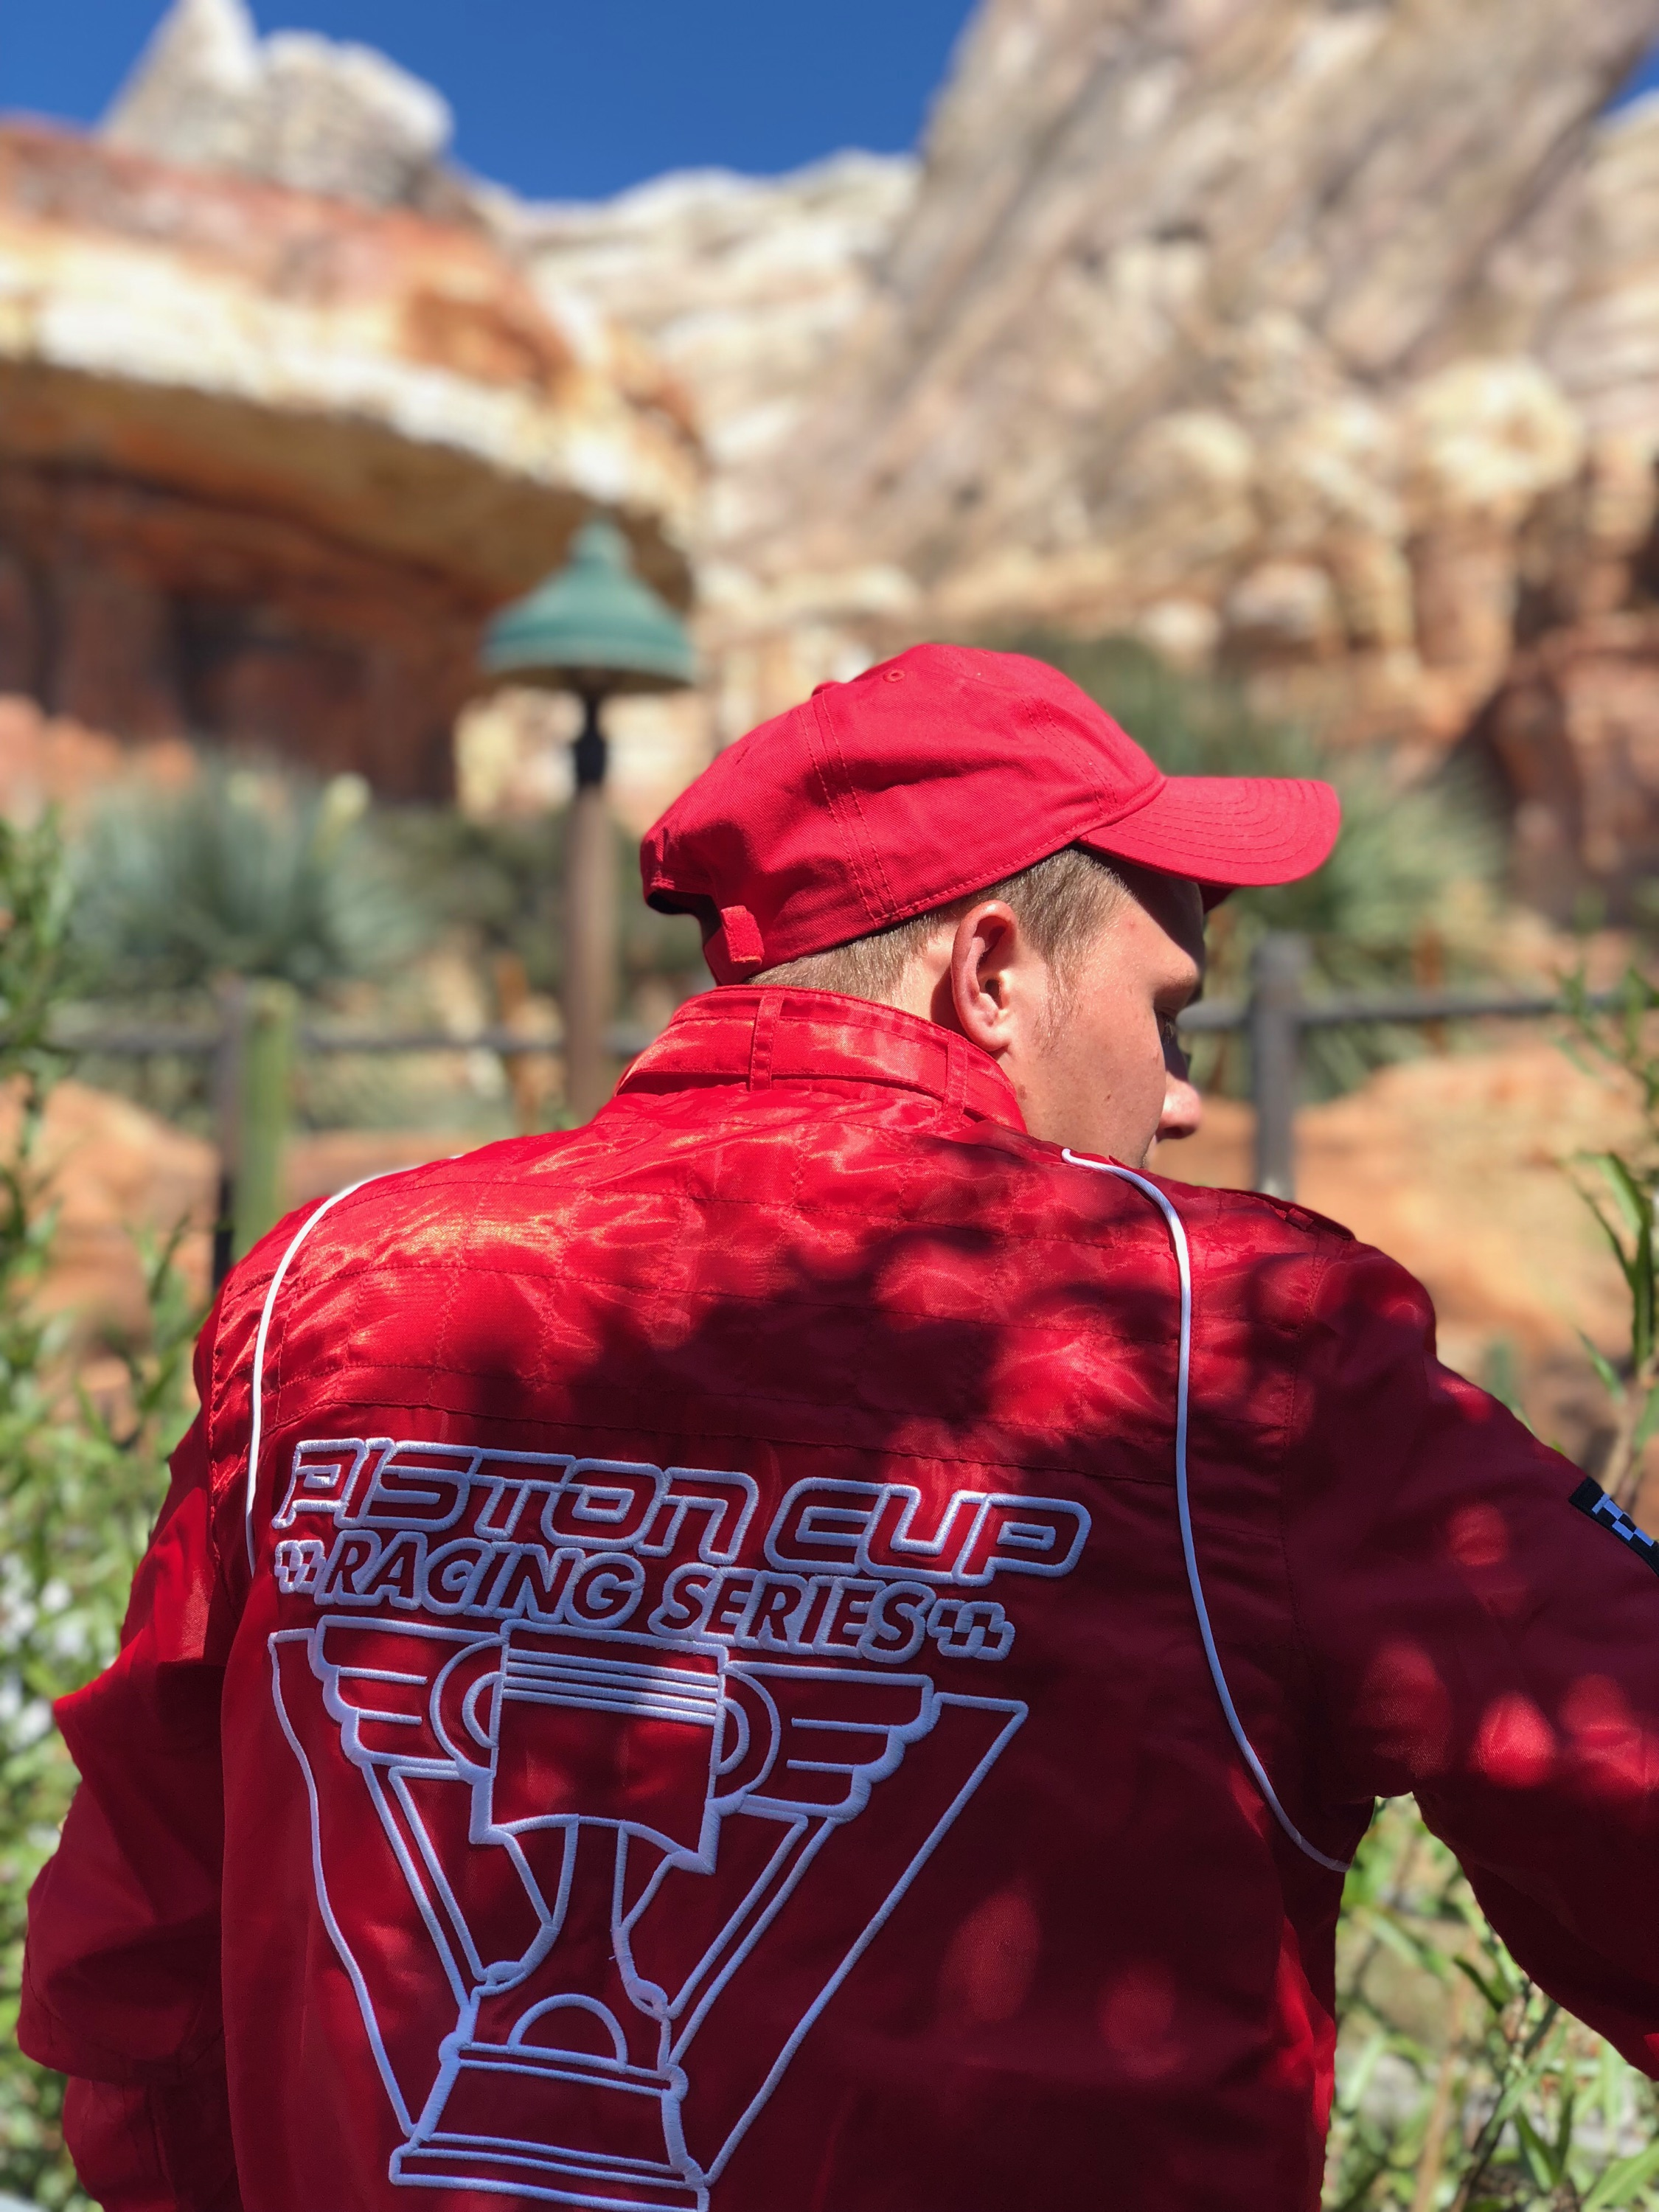 It was only fitting for Gage to wear his Piston Cup Racing Series jacket for his first experience in Cars Land.